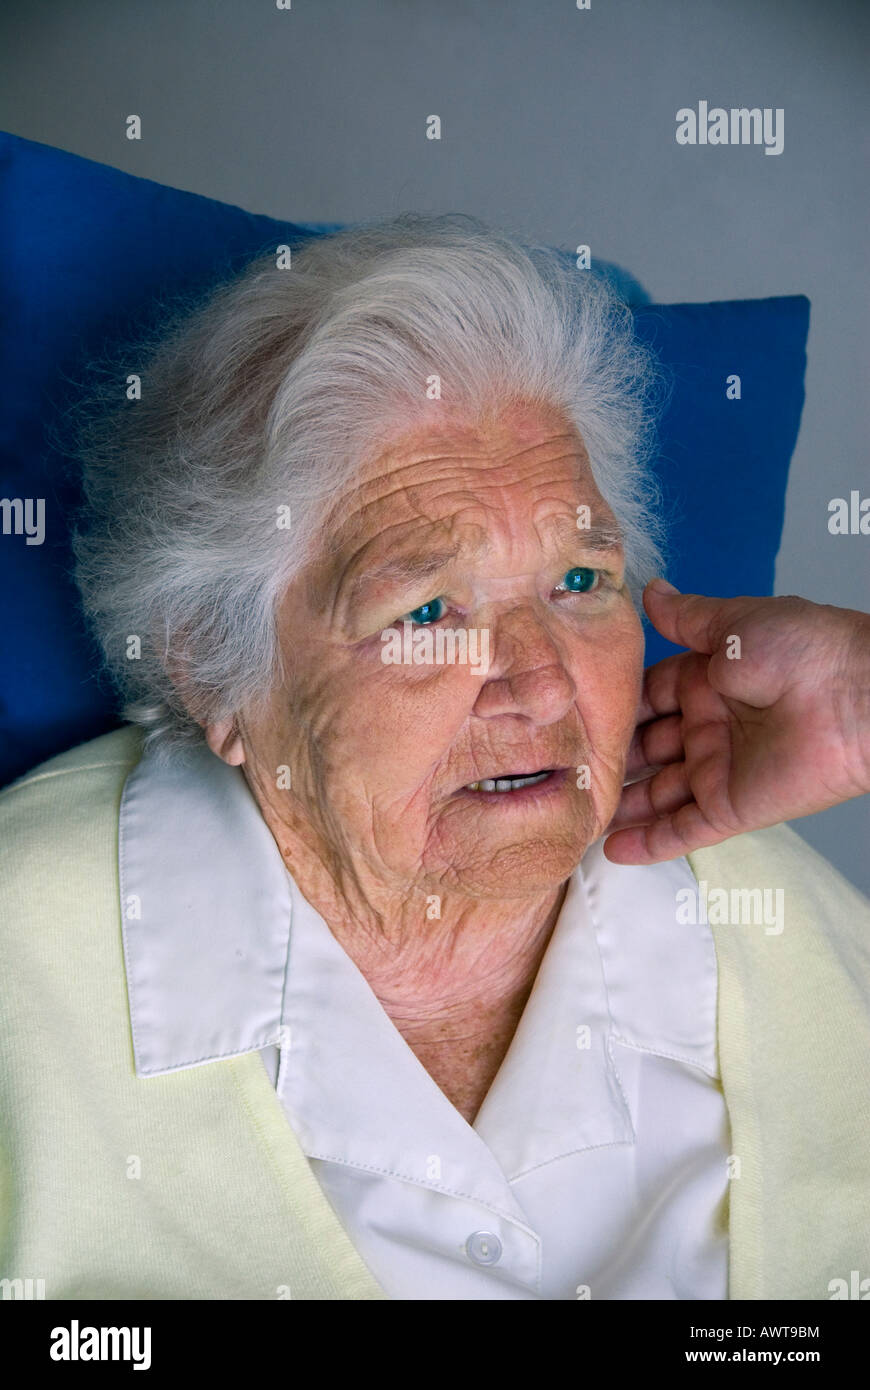 Apprehensive elderly woman with comforting hand of carer touching her face - Stock Image